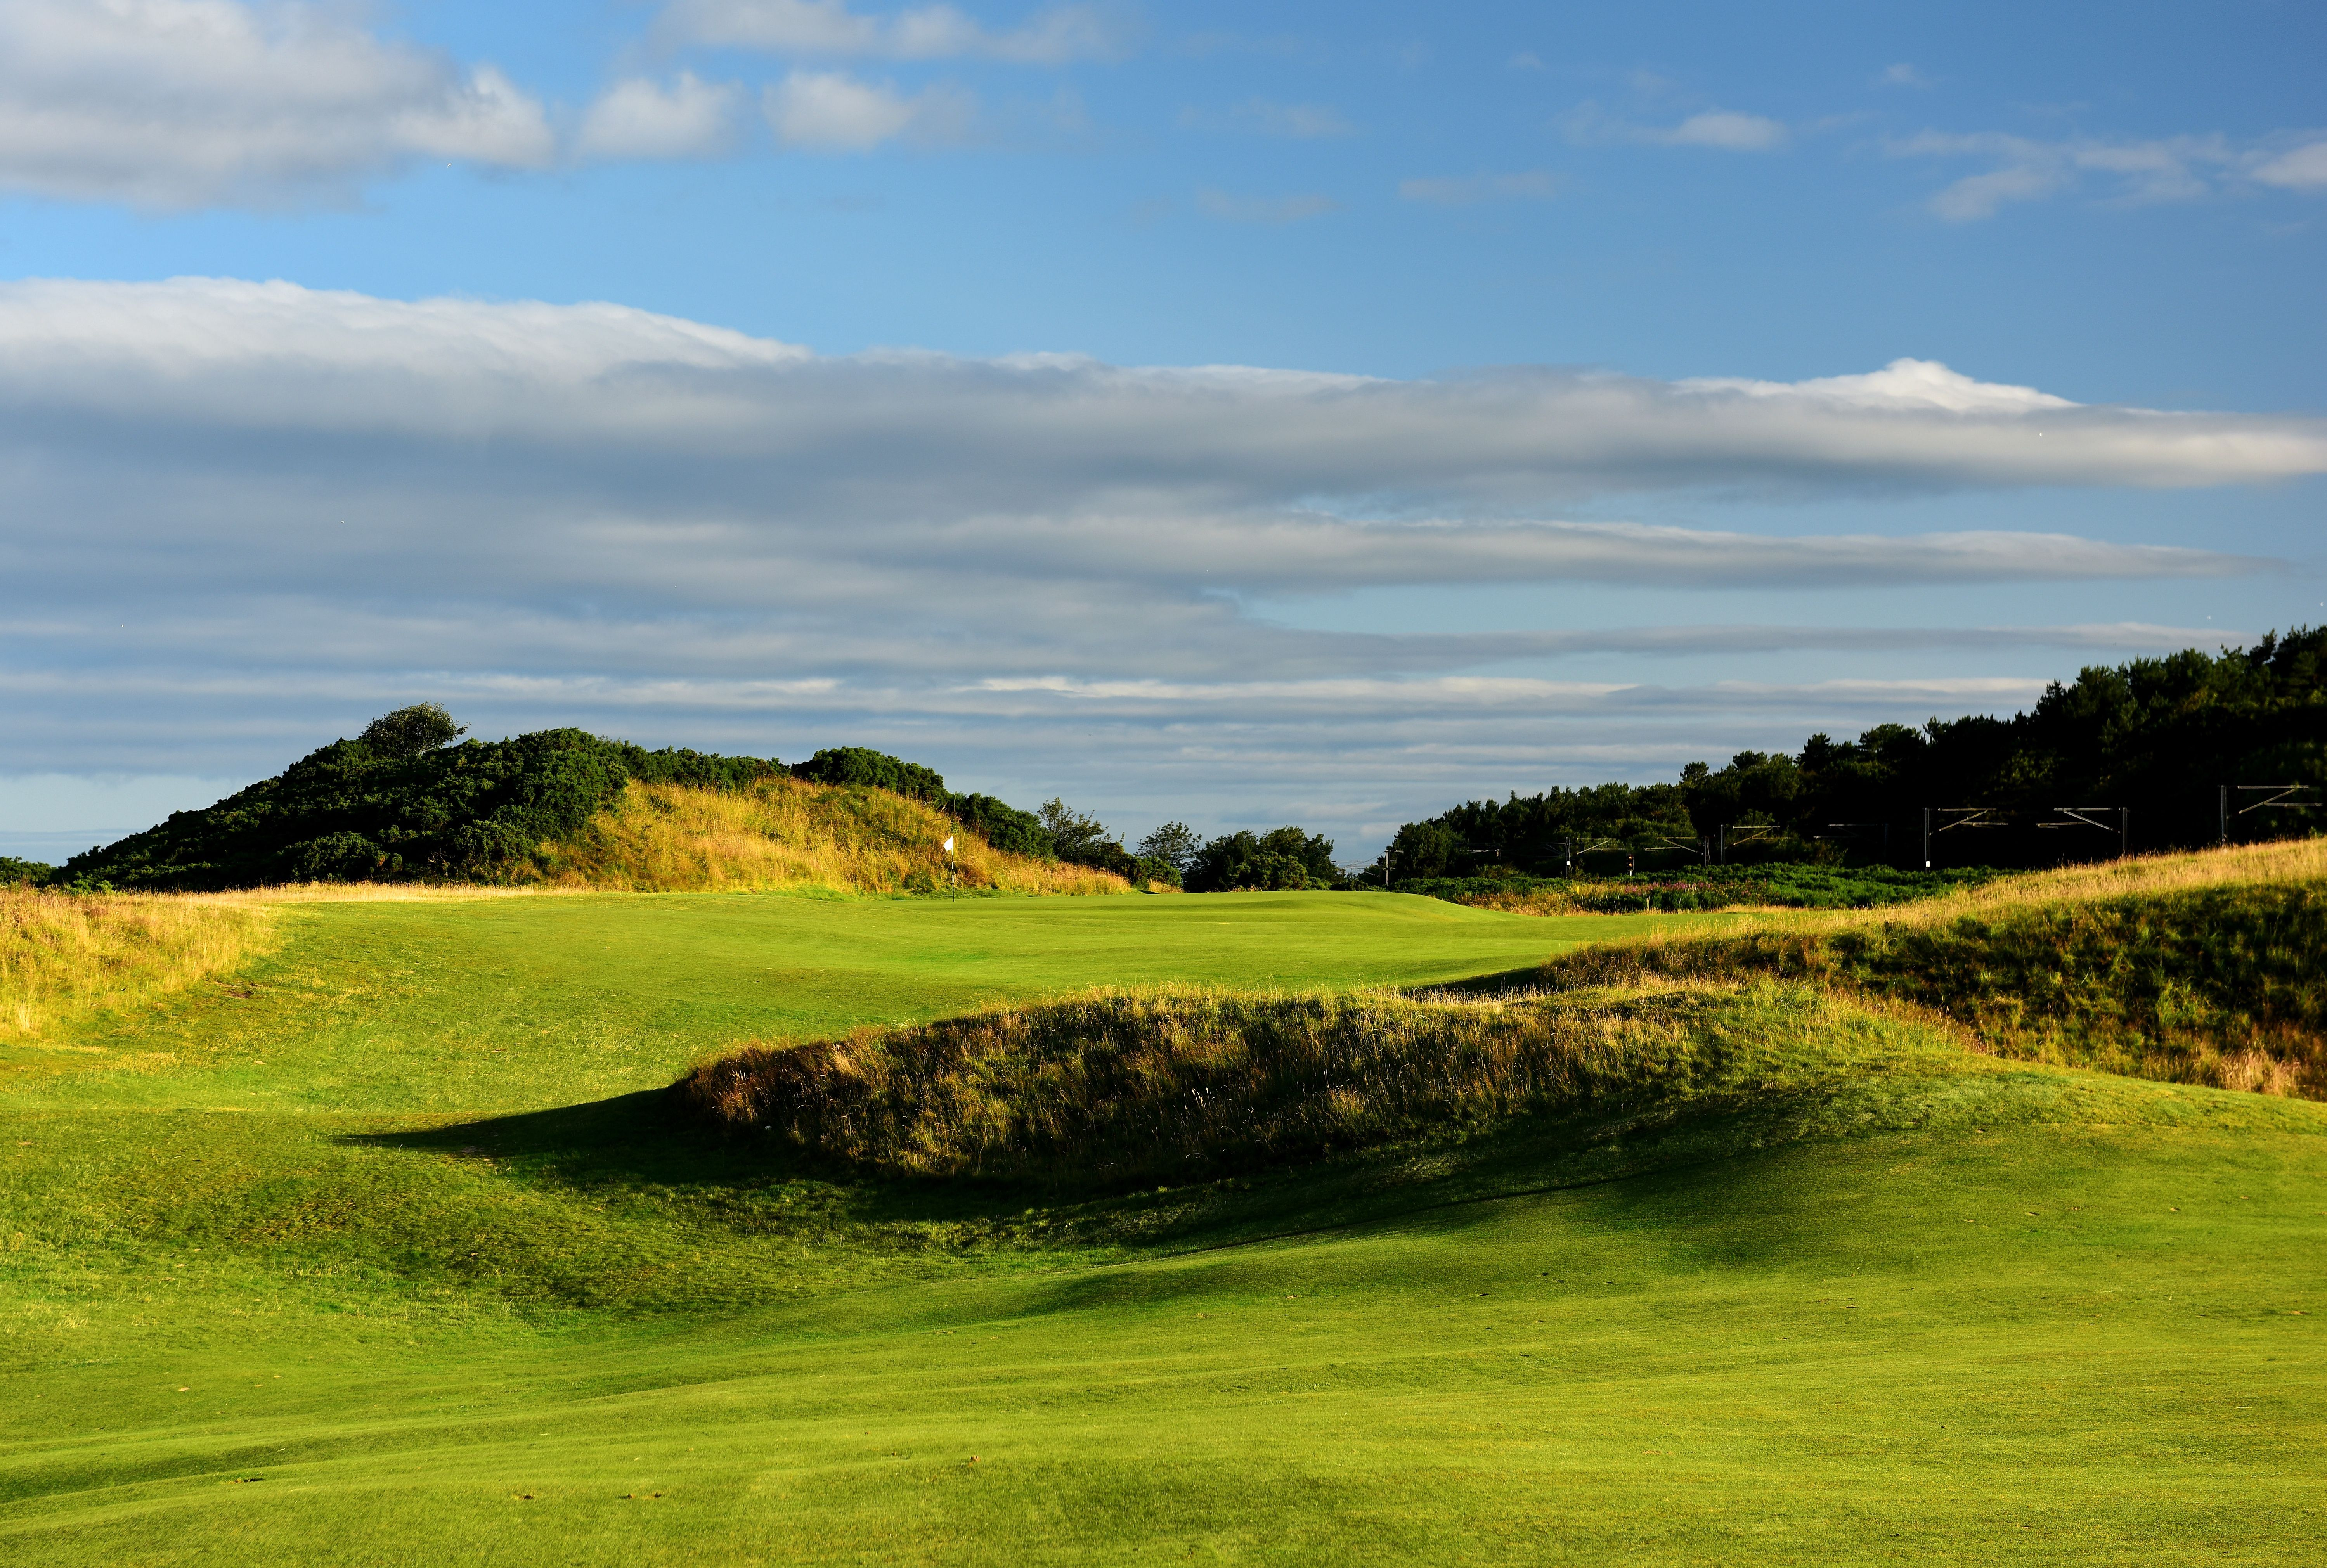 The 438 yards par 4, 10th hole Sandhills on the Old Course at Royal Troon